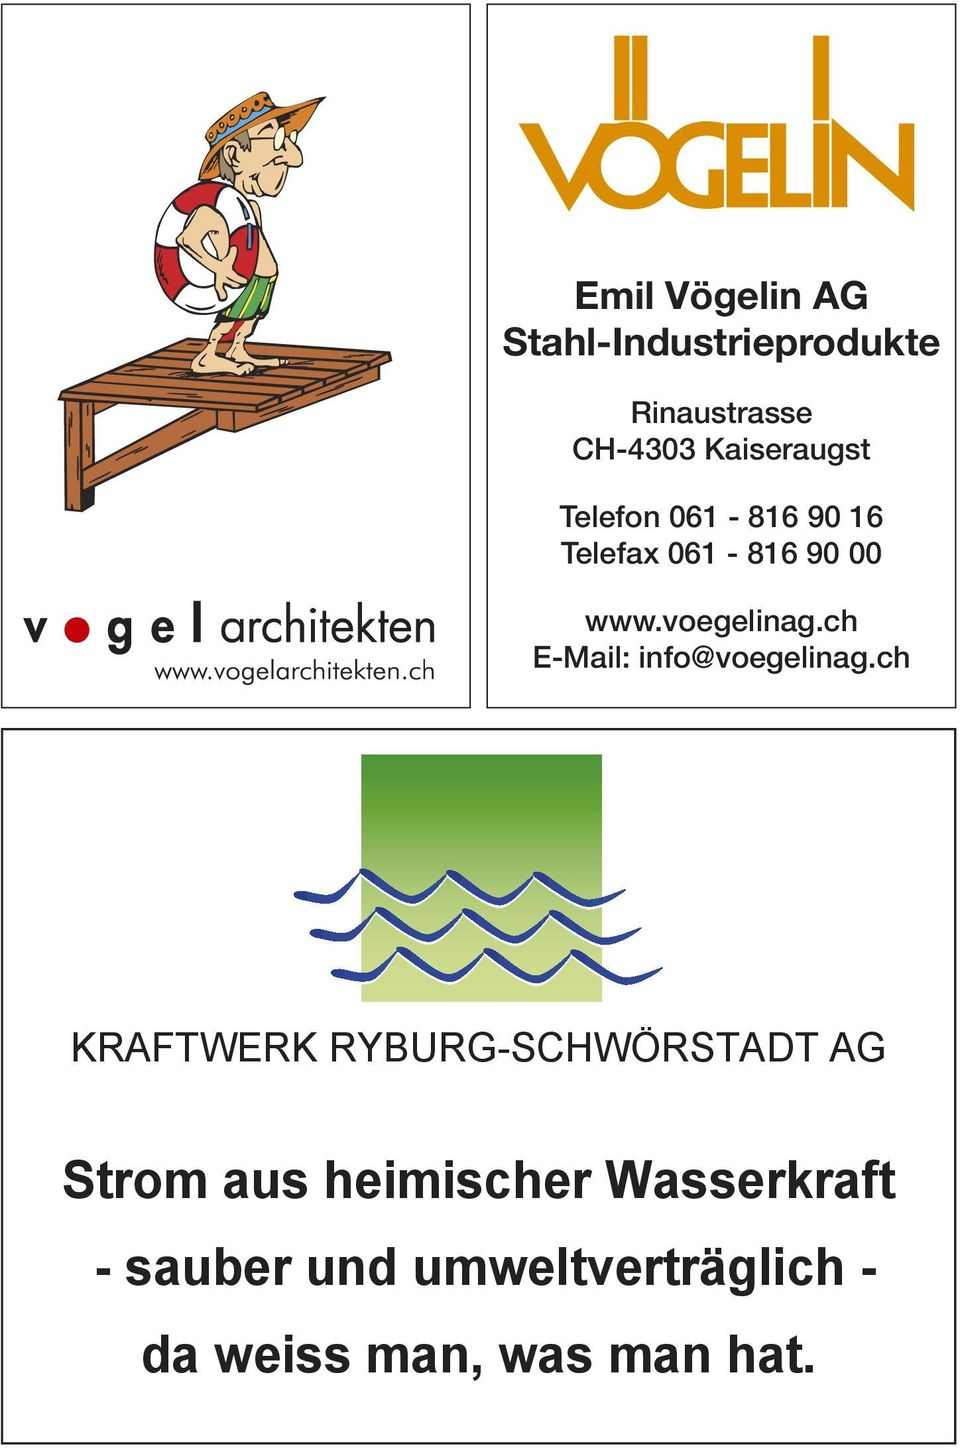 ch E-Mail: info@voegelinag.